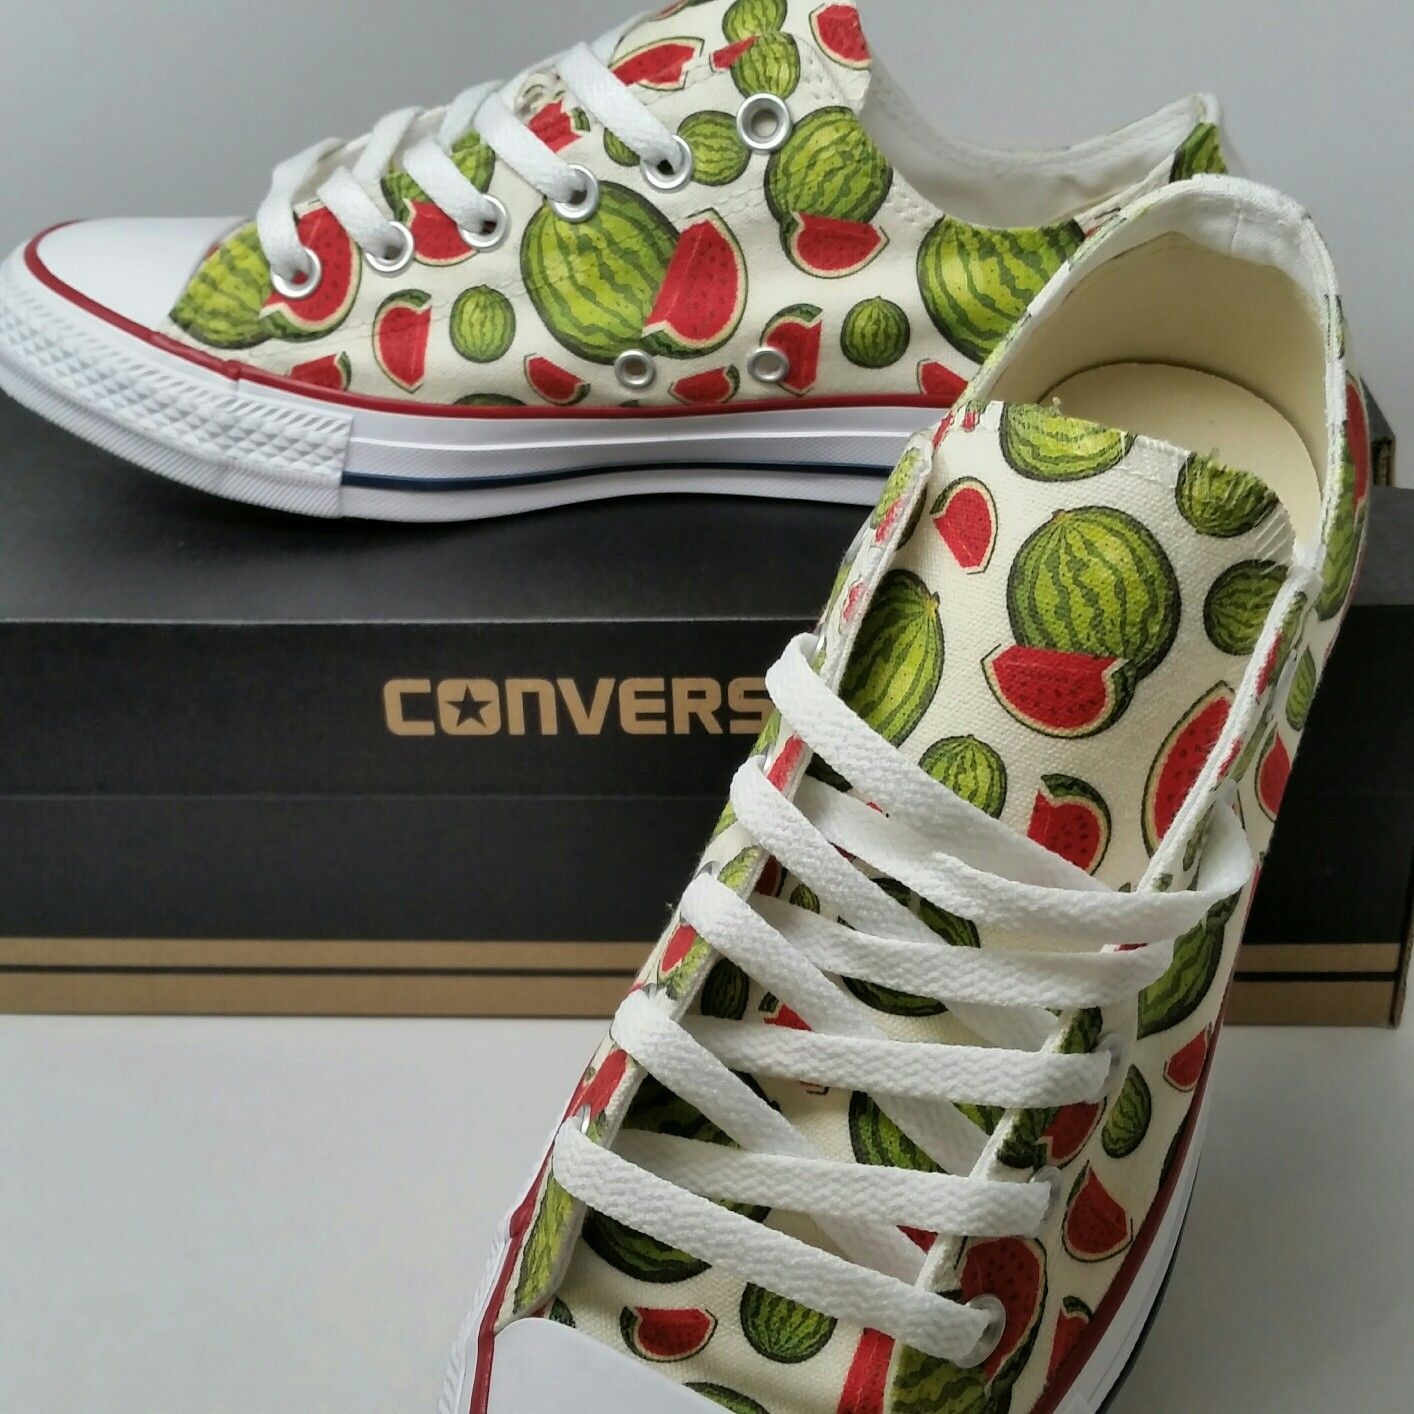 Anzai Empotrar Volverse loco  Pin on Custom Converse Chucks - Customize Converse Shoes Online